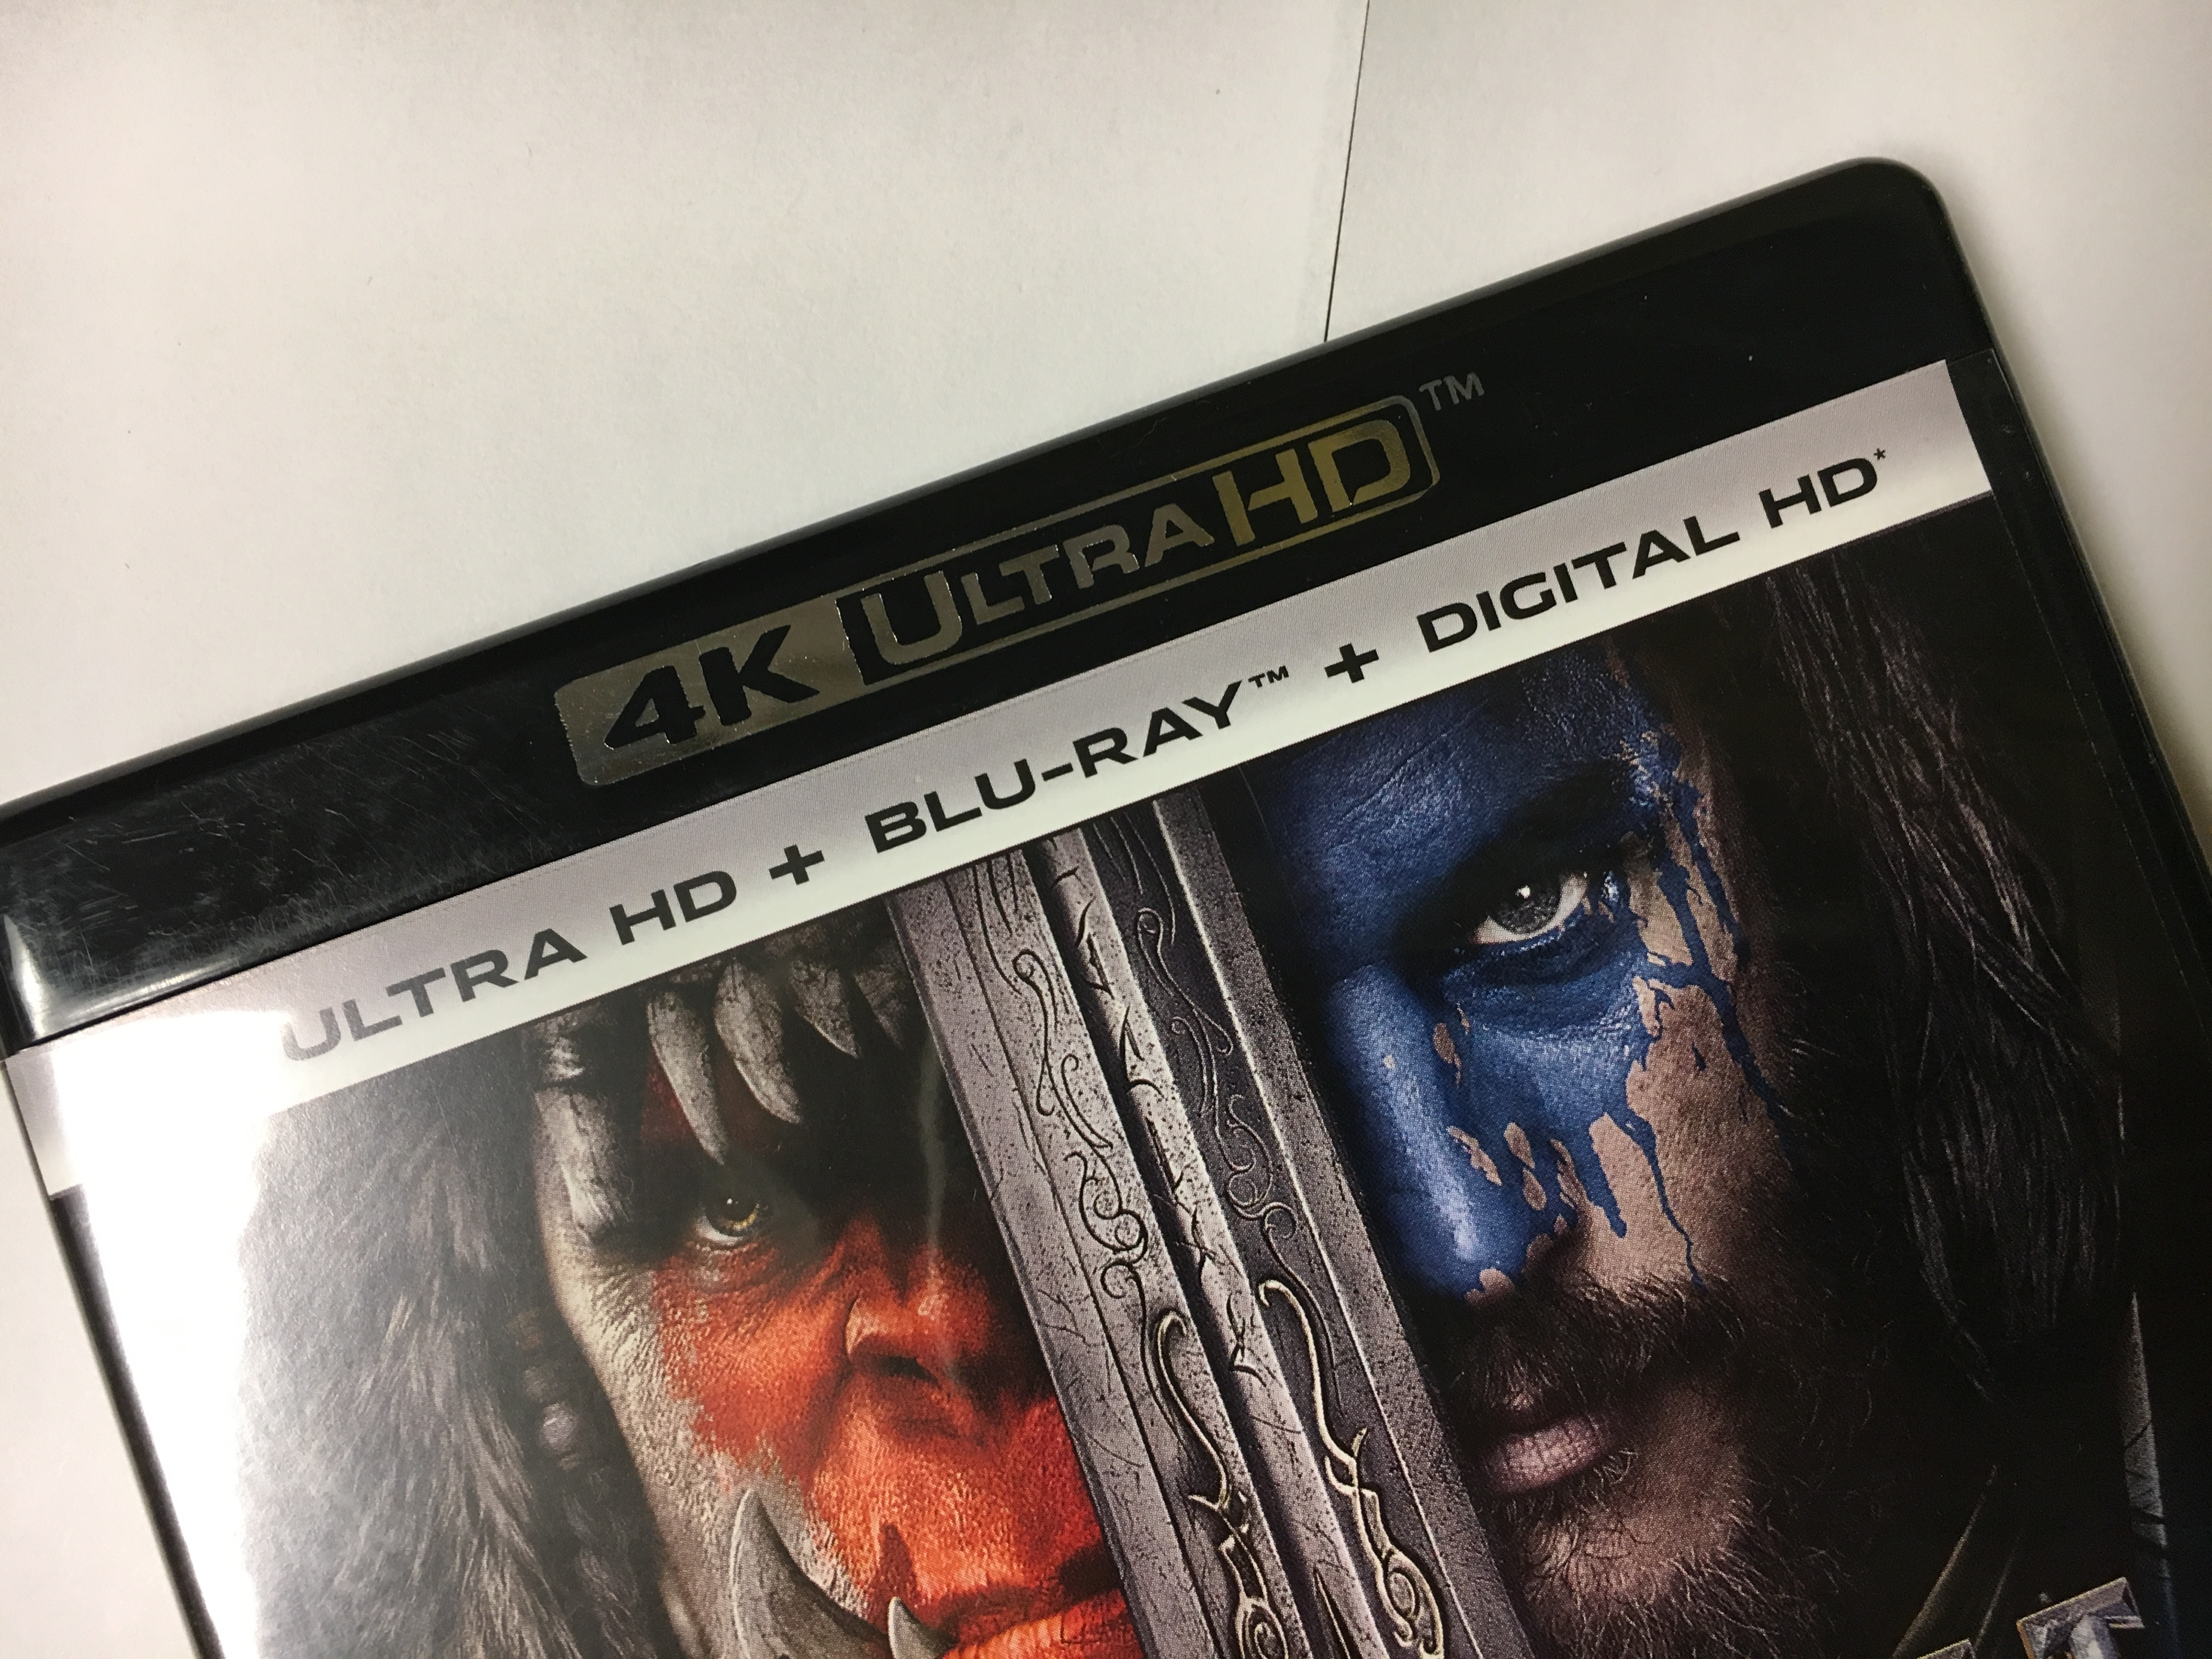 Warcraft 4K Disc - 4K UHD Disc Replication at Affordable Price